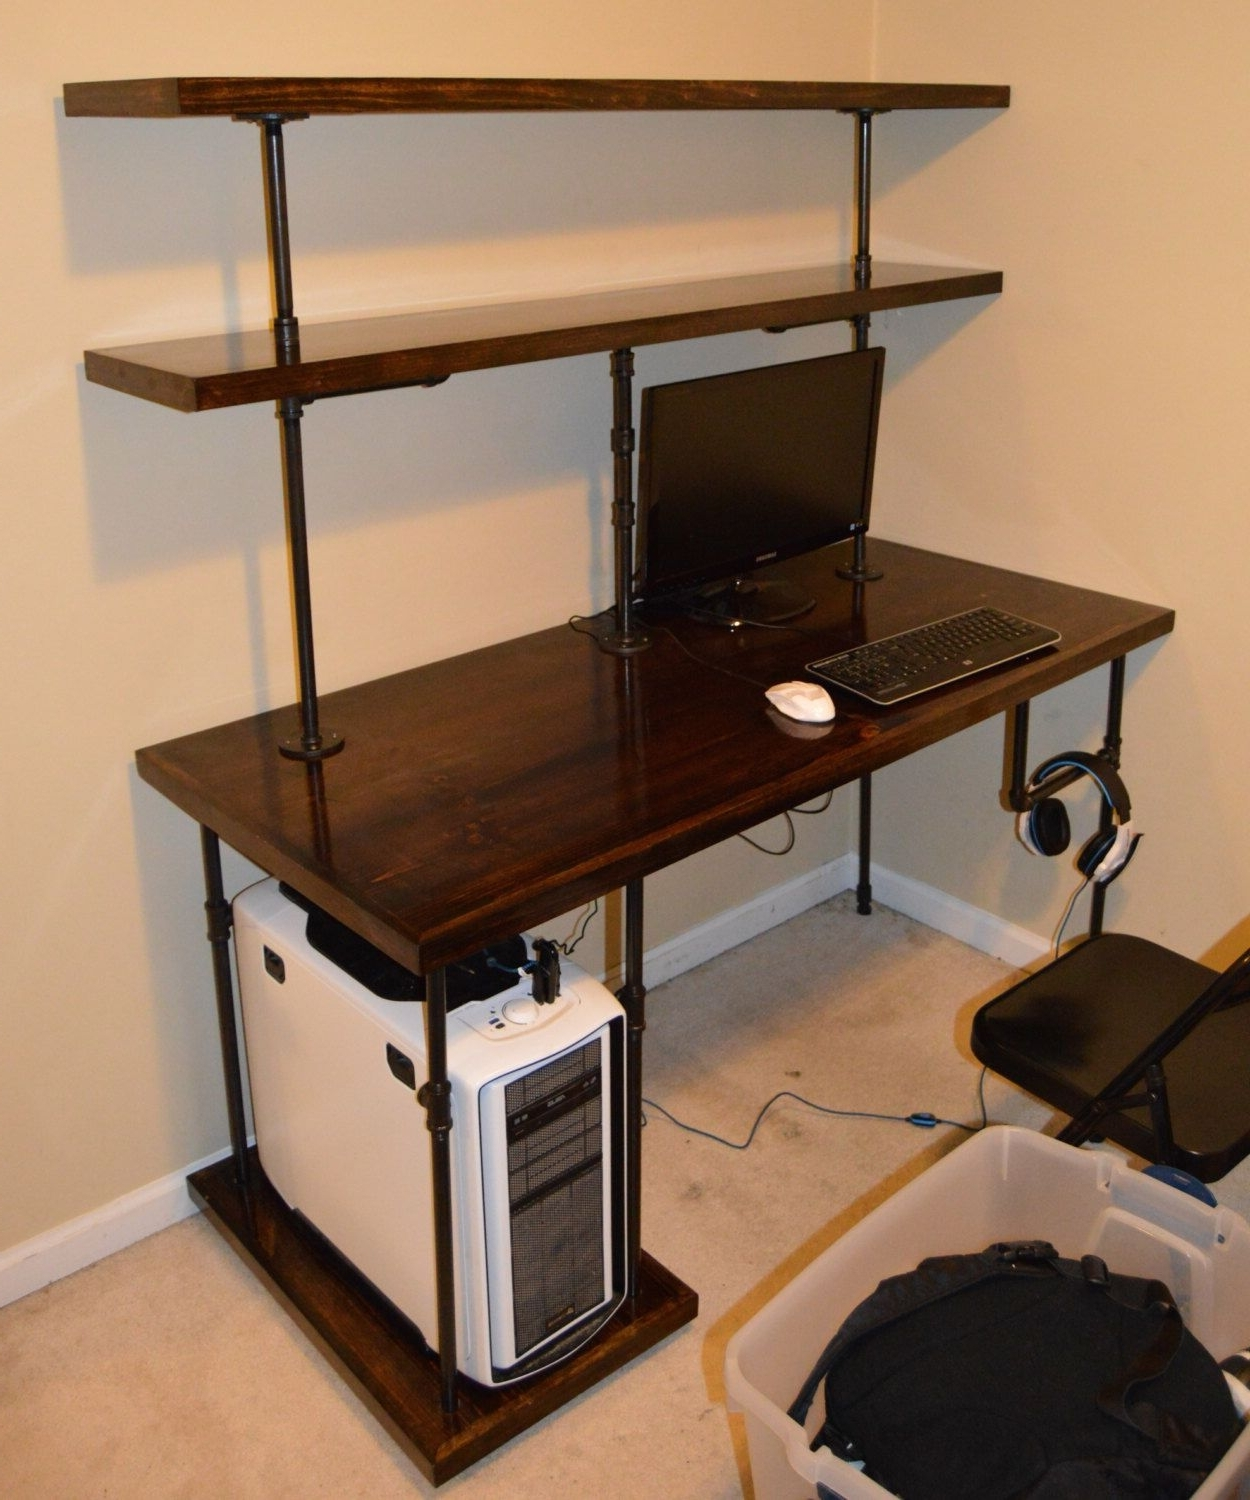 Diy Computer Desks Within Widely Used 23+ Diy Computer Desk Ideas That Make More Spirit Work (View 11 of 20)